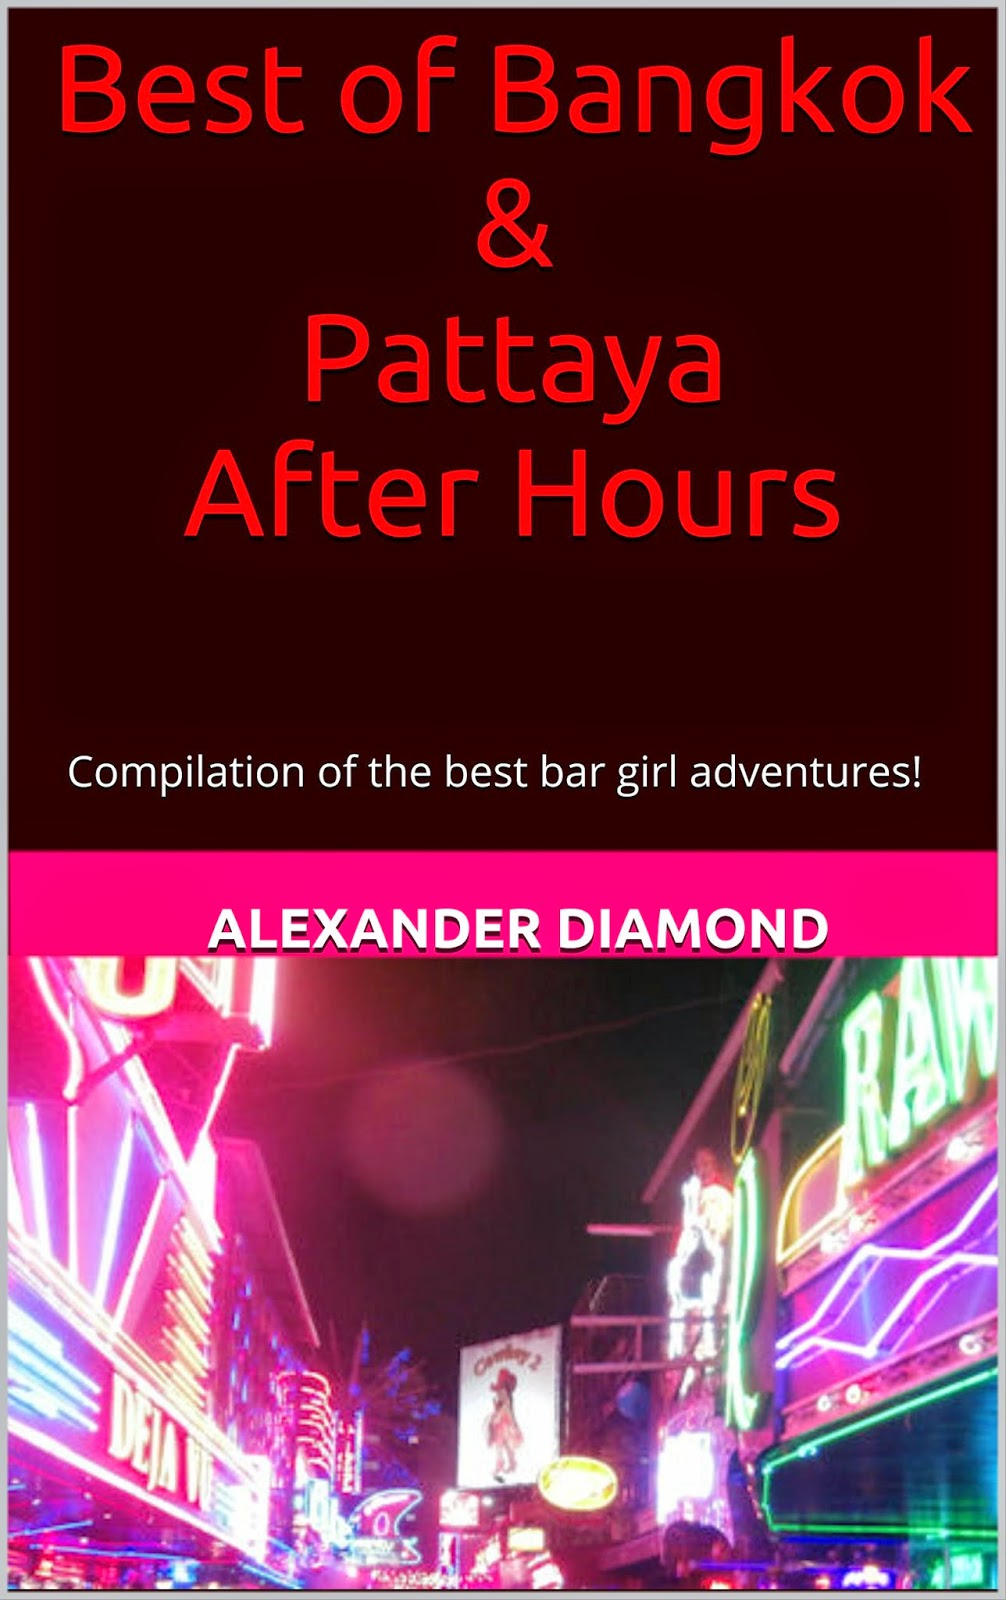 Best of Bangkok After Hours - Read it today!